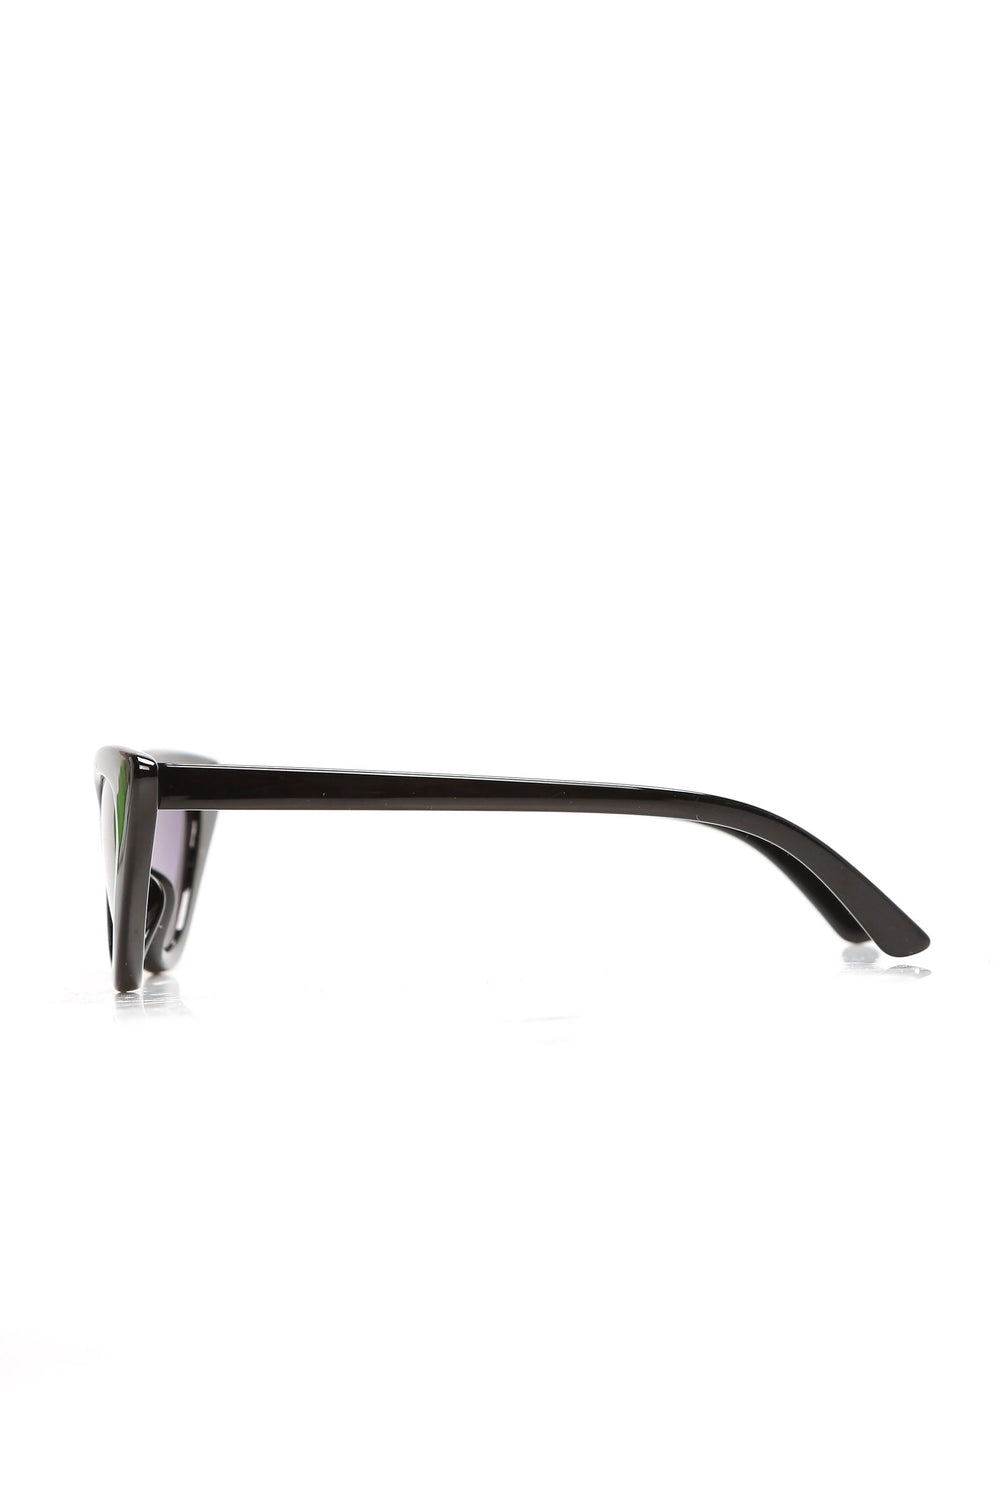 Show Some Class Sunglasses - Black